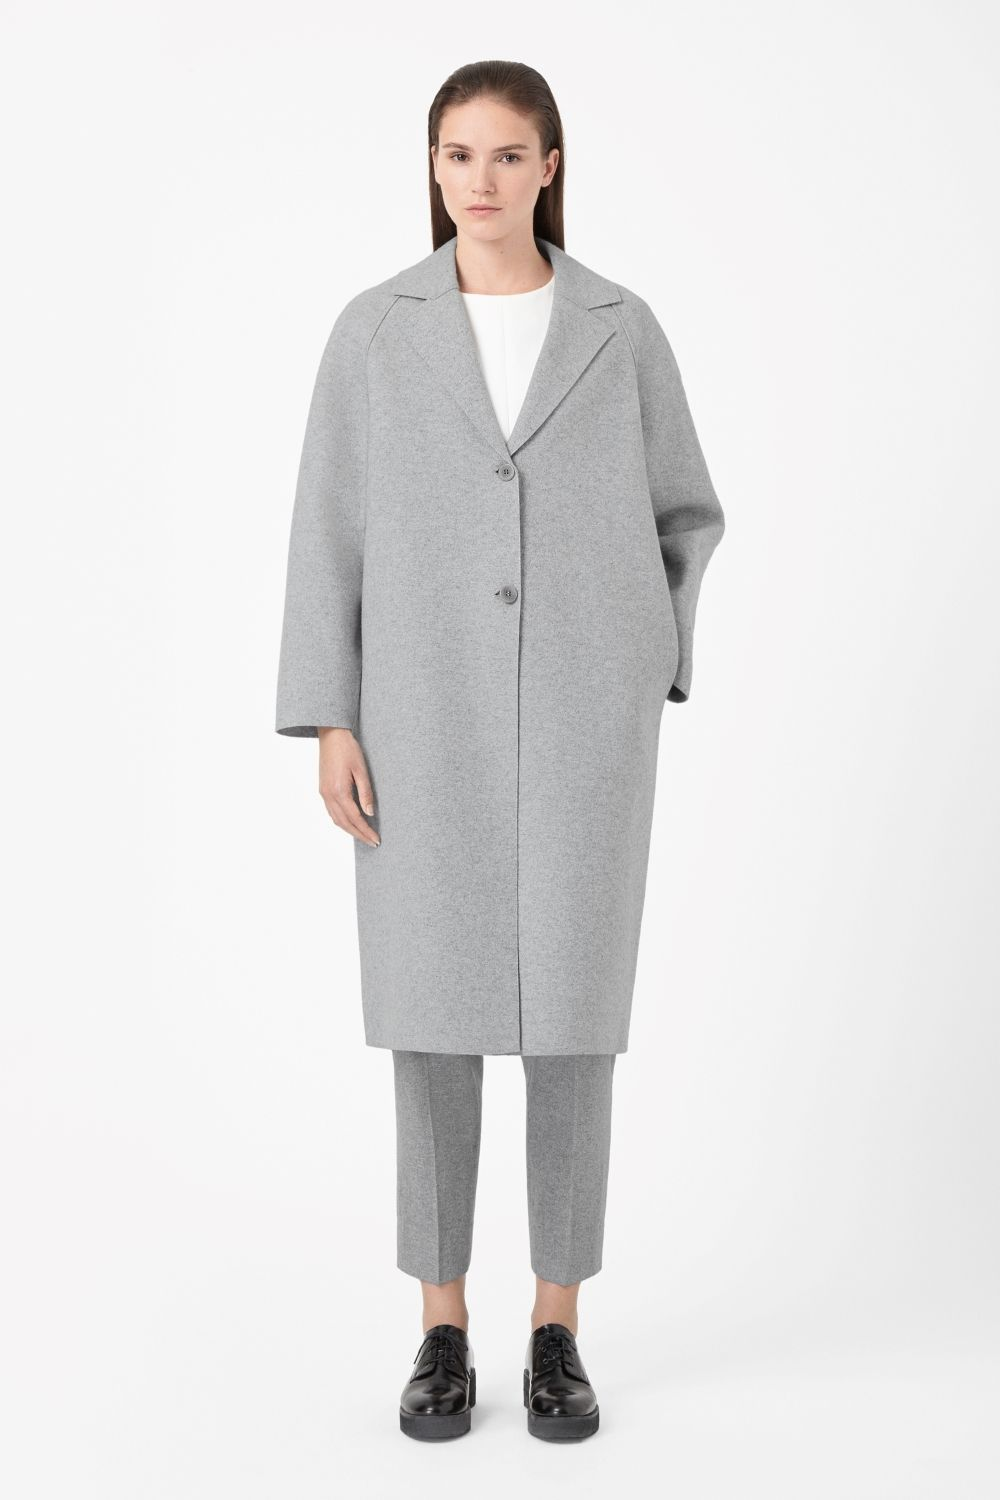 Made from unlined wool-mix jersey with a lightly structured quality, this  oversized coat